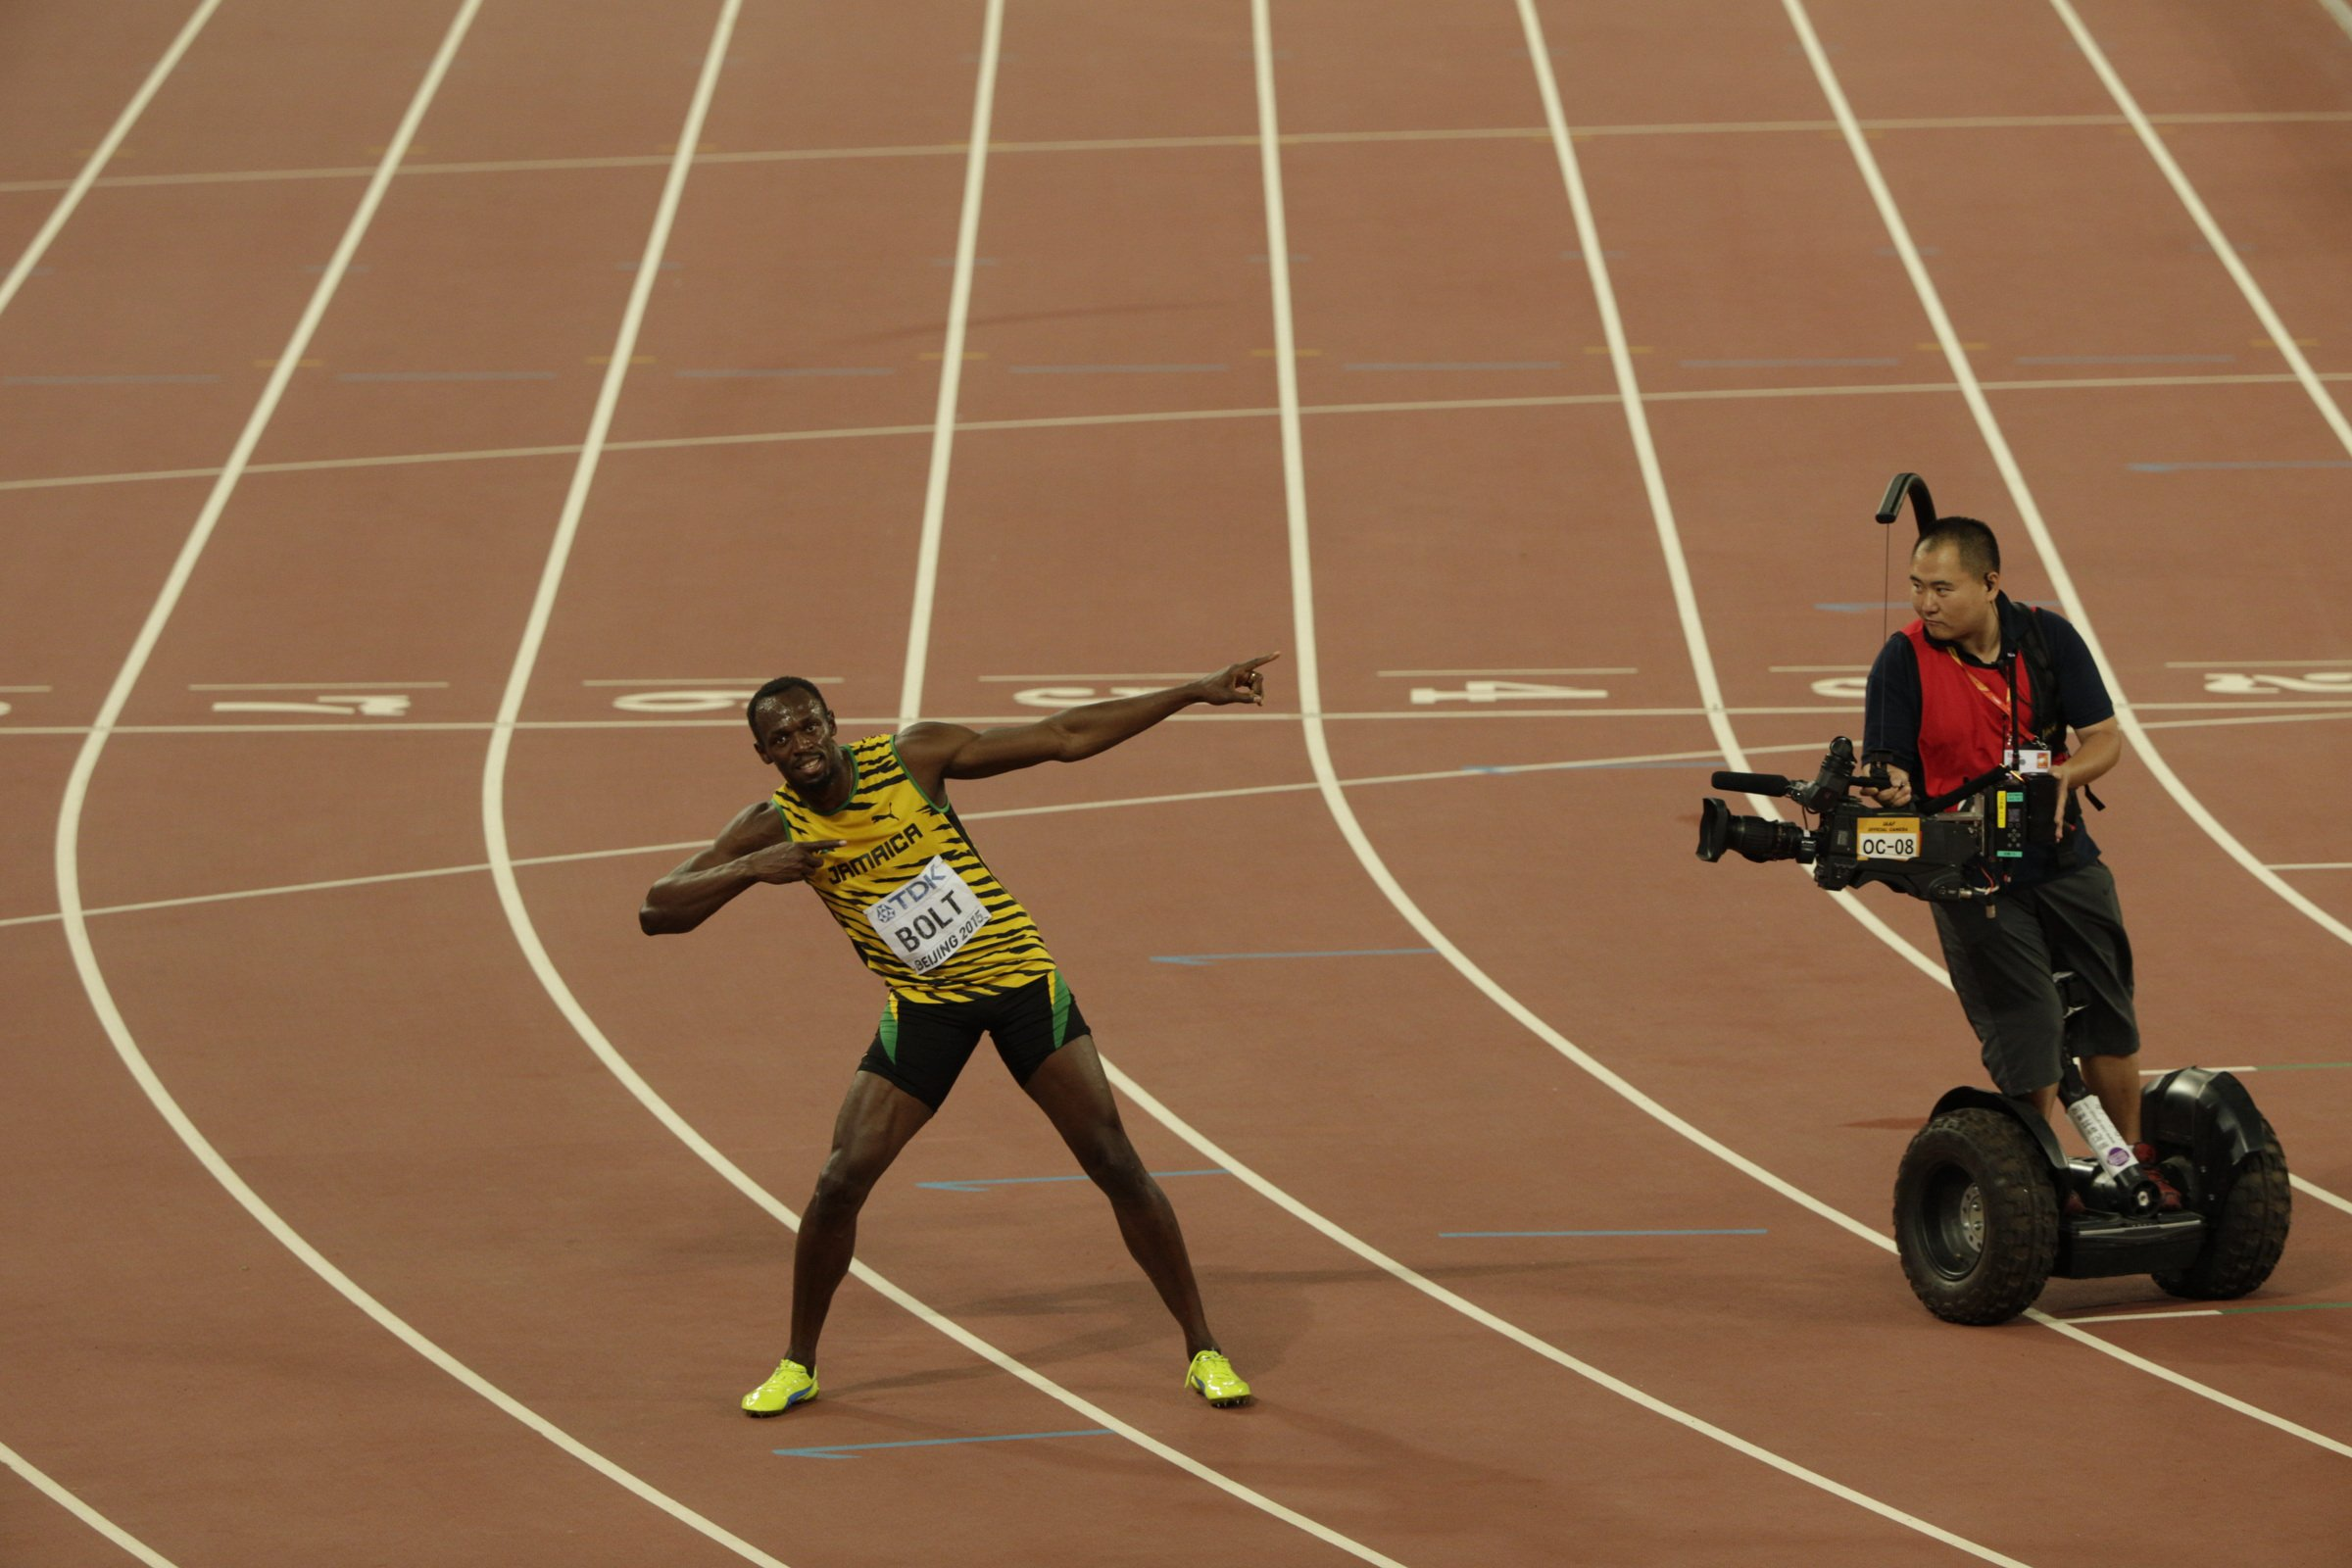 A videographer captures Usain Bolt's signature celebration after the men's 100-meter final.